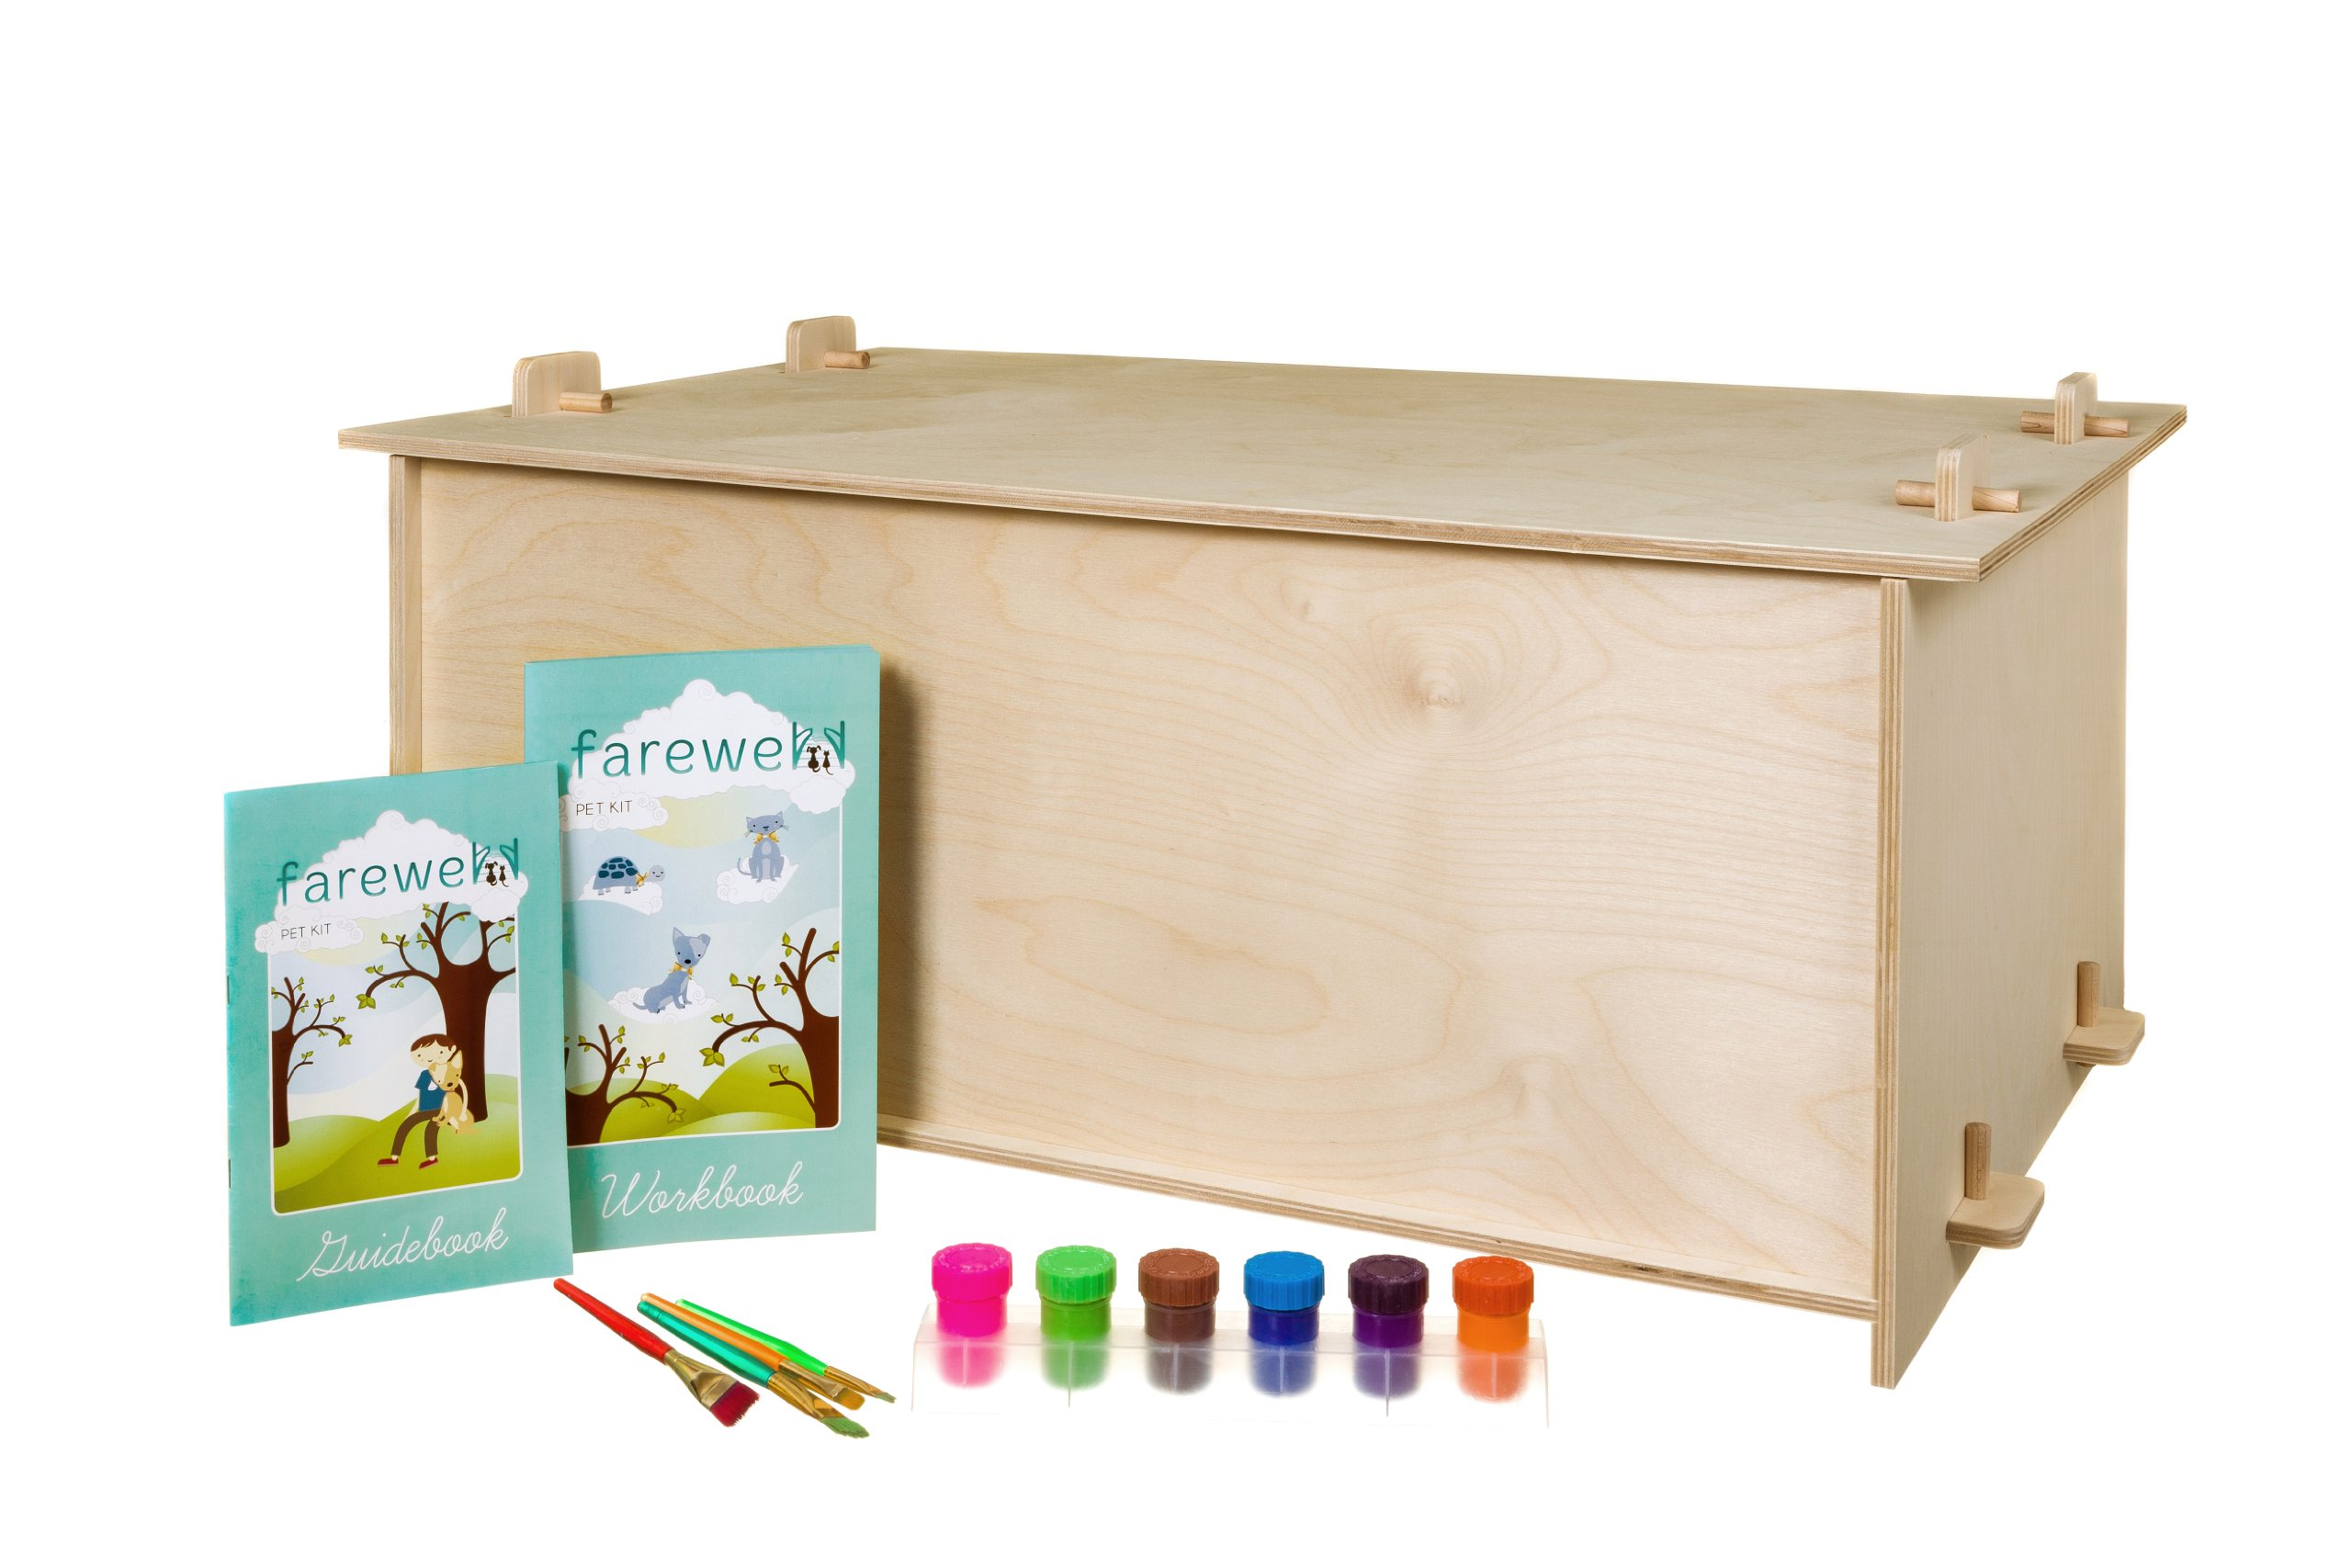 Farwellpetkit Pet Memorial Kit with Meaningful Activities, Includes Workbook, Guidebook, Box, Paints and Brushes, X-Large